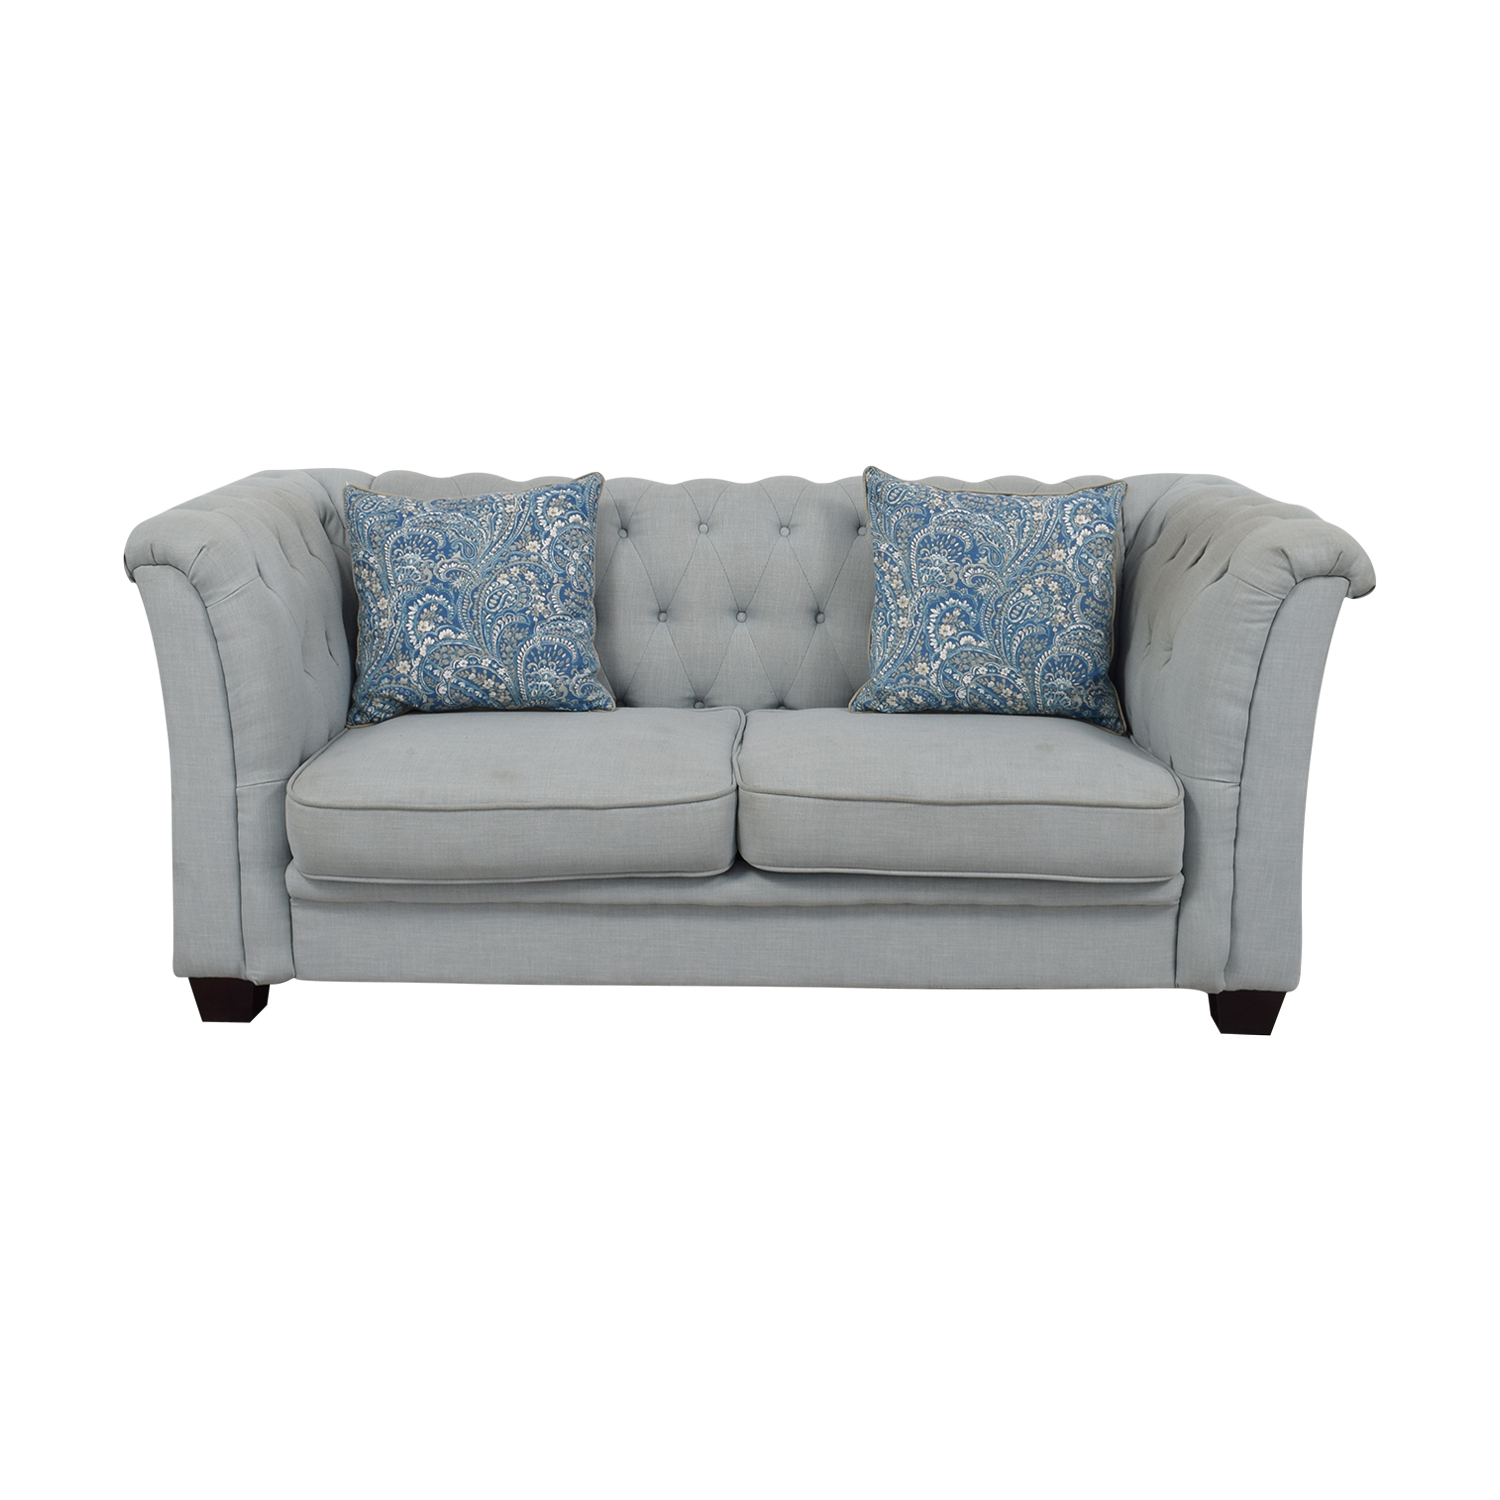 Sofa De Escai S1du 78 Off Delvi Furniture Delvi Furniture Sky Blue Tufted Two